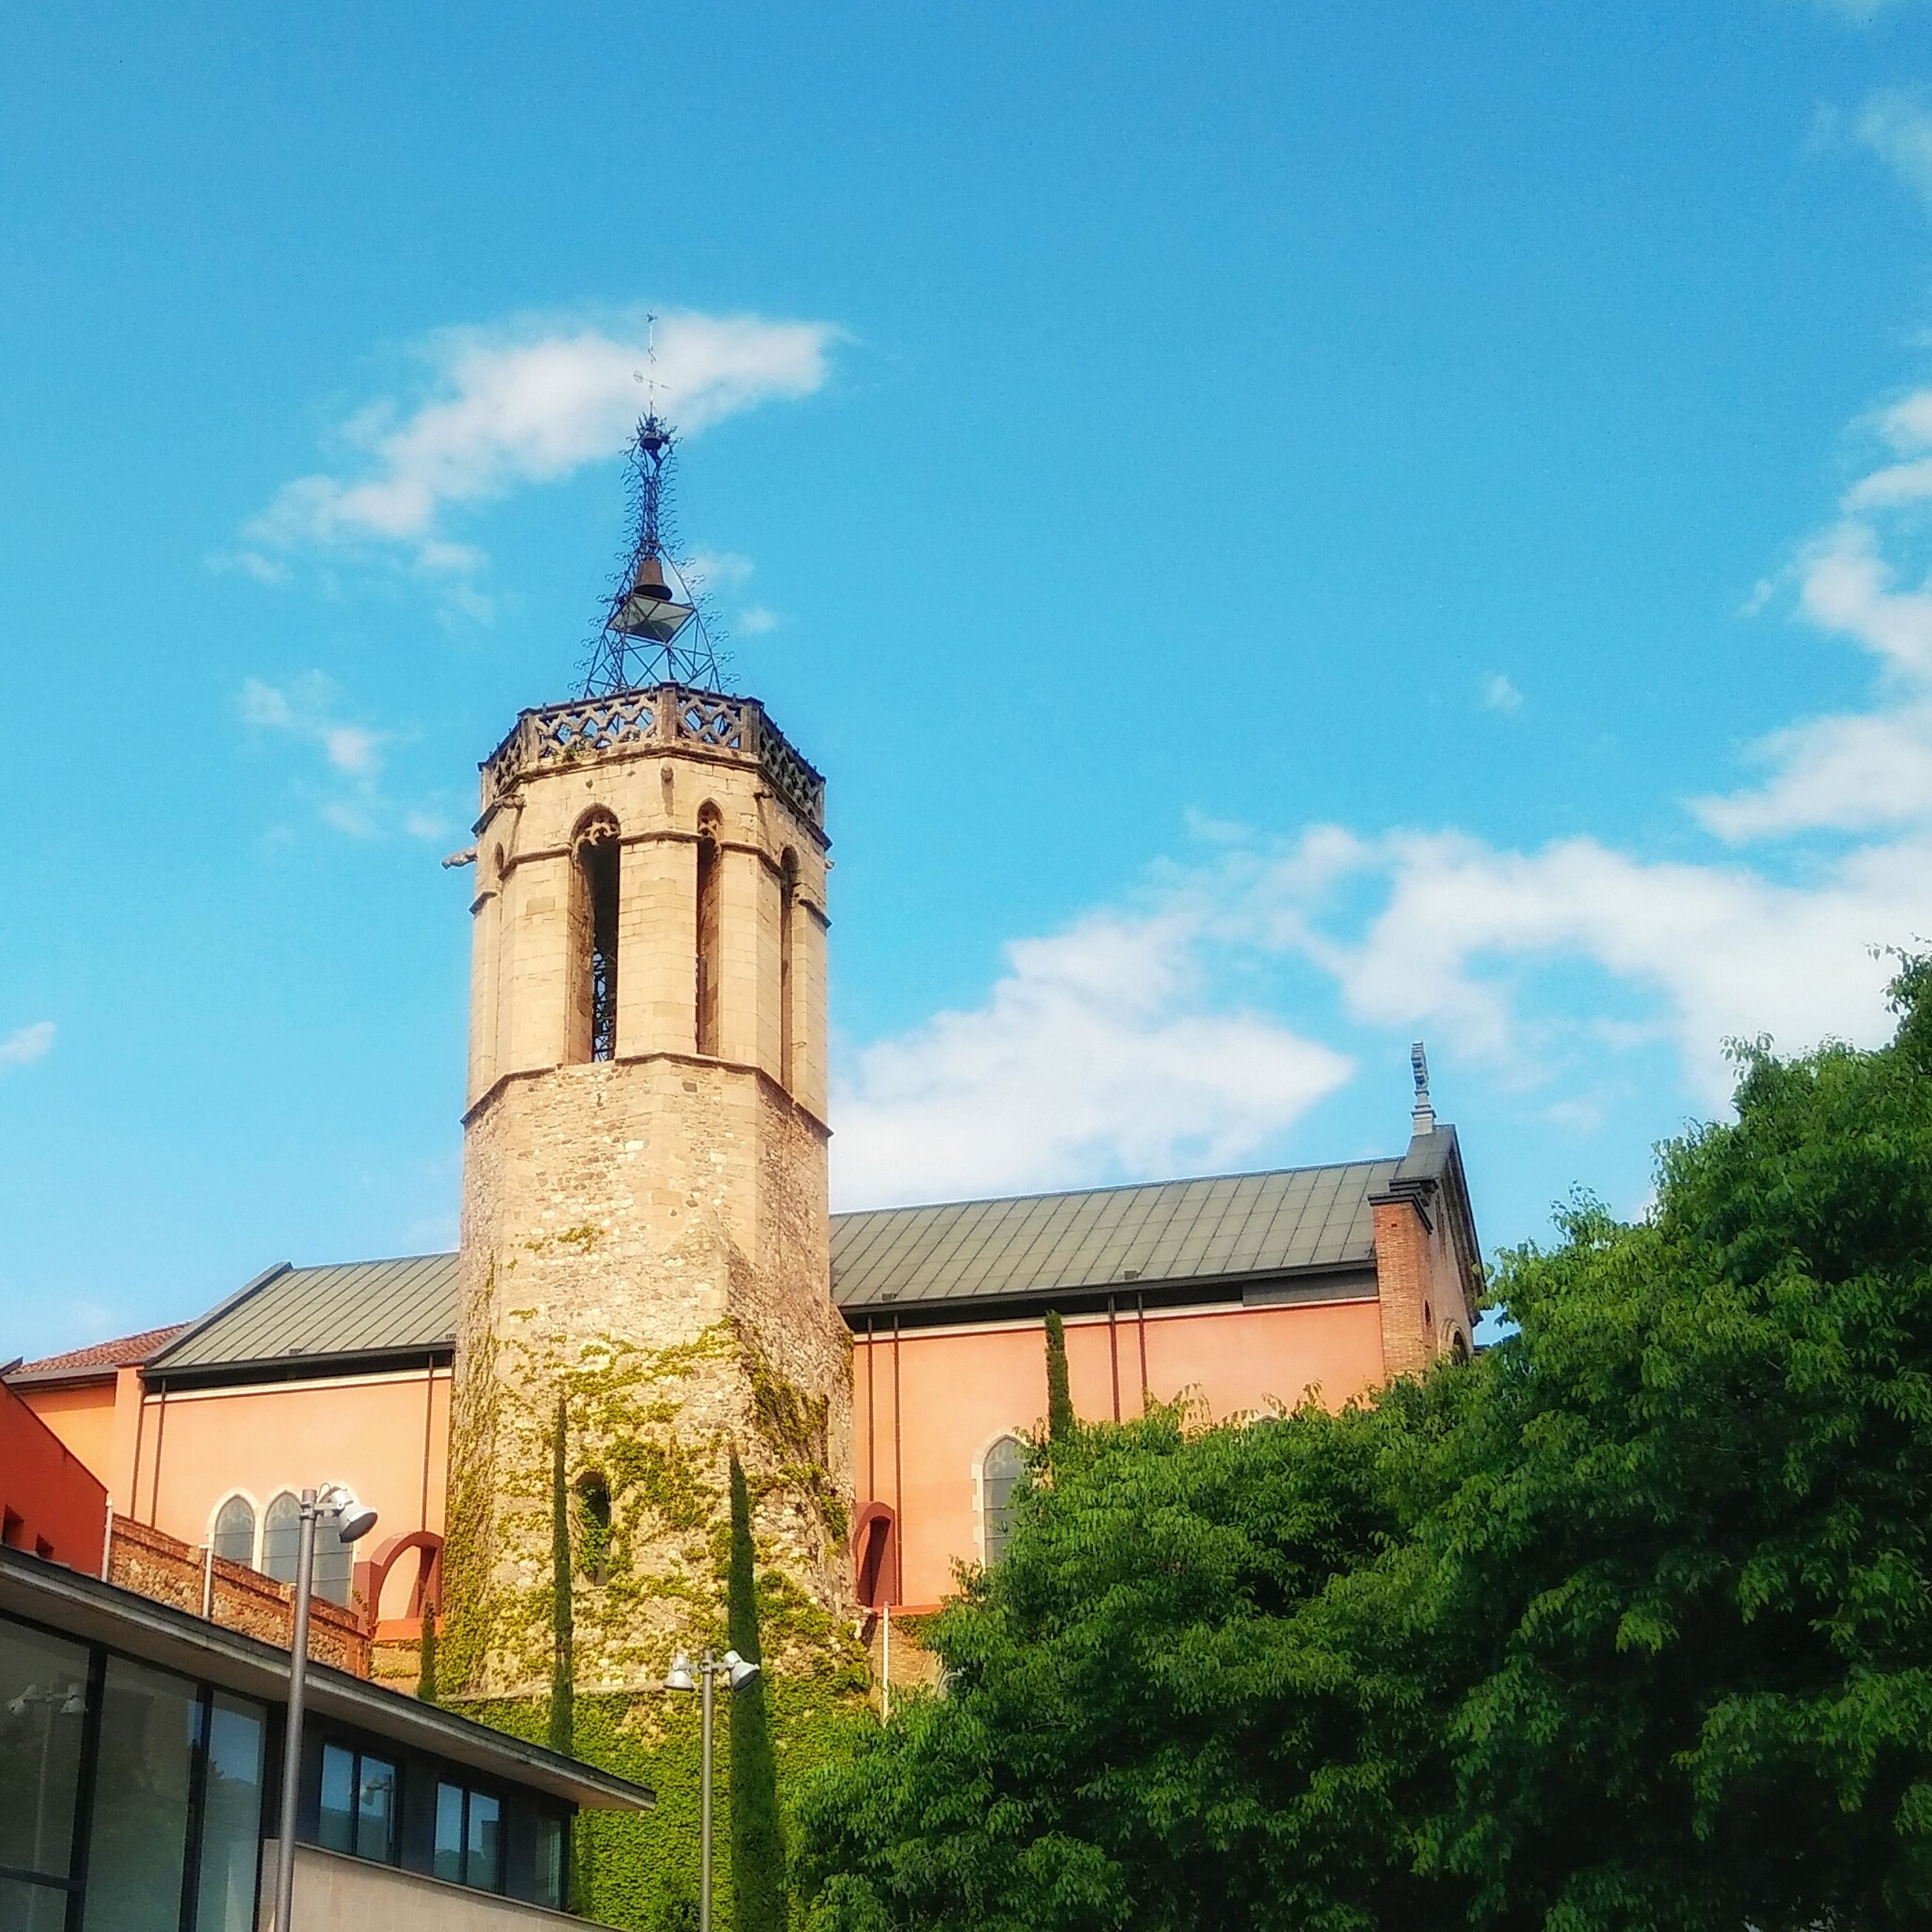 architecture, built structure, building exterior, sky, low angle view, tree, blue, cloud - sky, church, tower, religion, cloud, place of worship, history, day, outdoors, exterior, old, no people